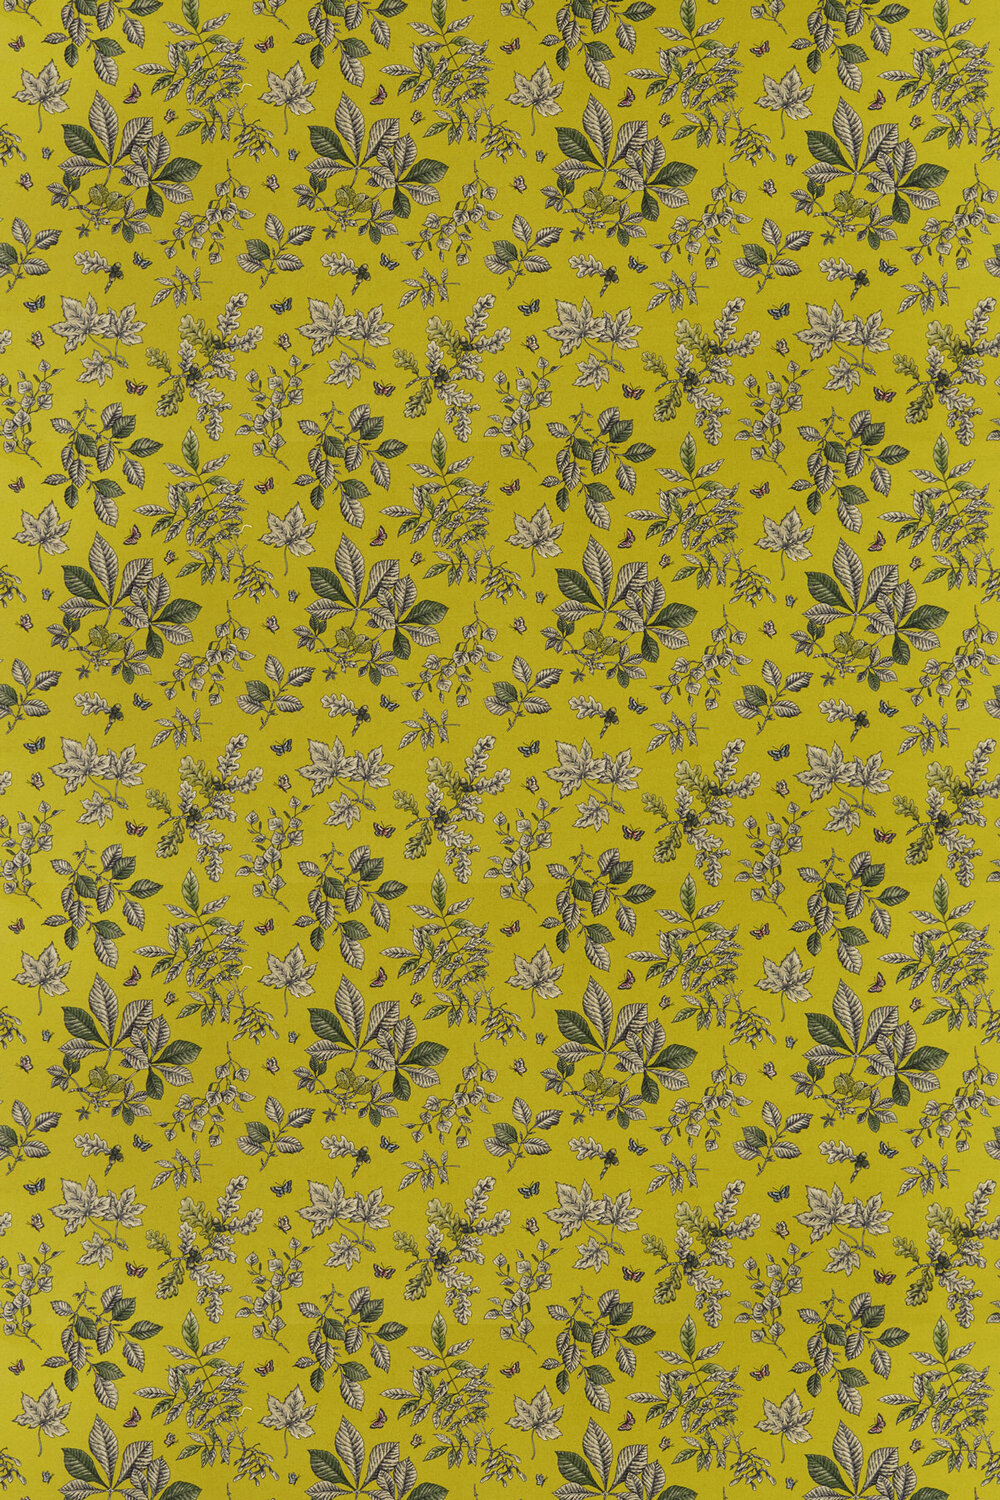 Clarke & Clarke Hortus Chartreuse Fabric - Product code: F1329/03